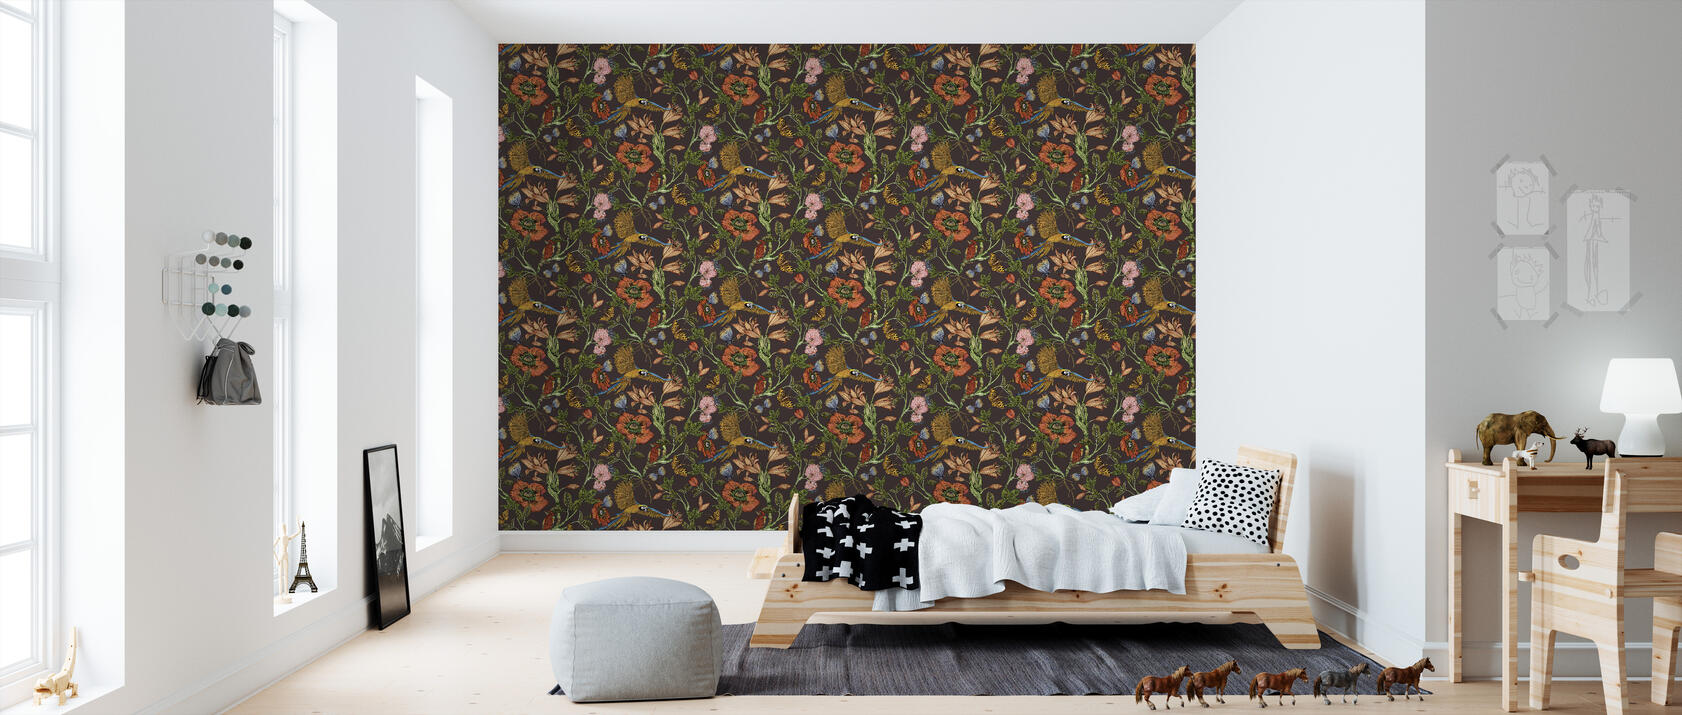 parrot brown stilvolle tapete h chster qualit t mit schneller lieferung photowall. Black Bedroom Furniture Sets. Home Design Ideas